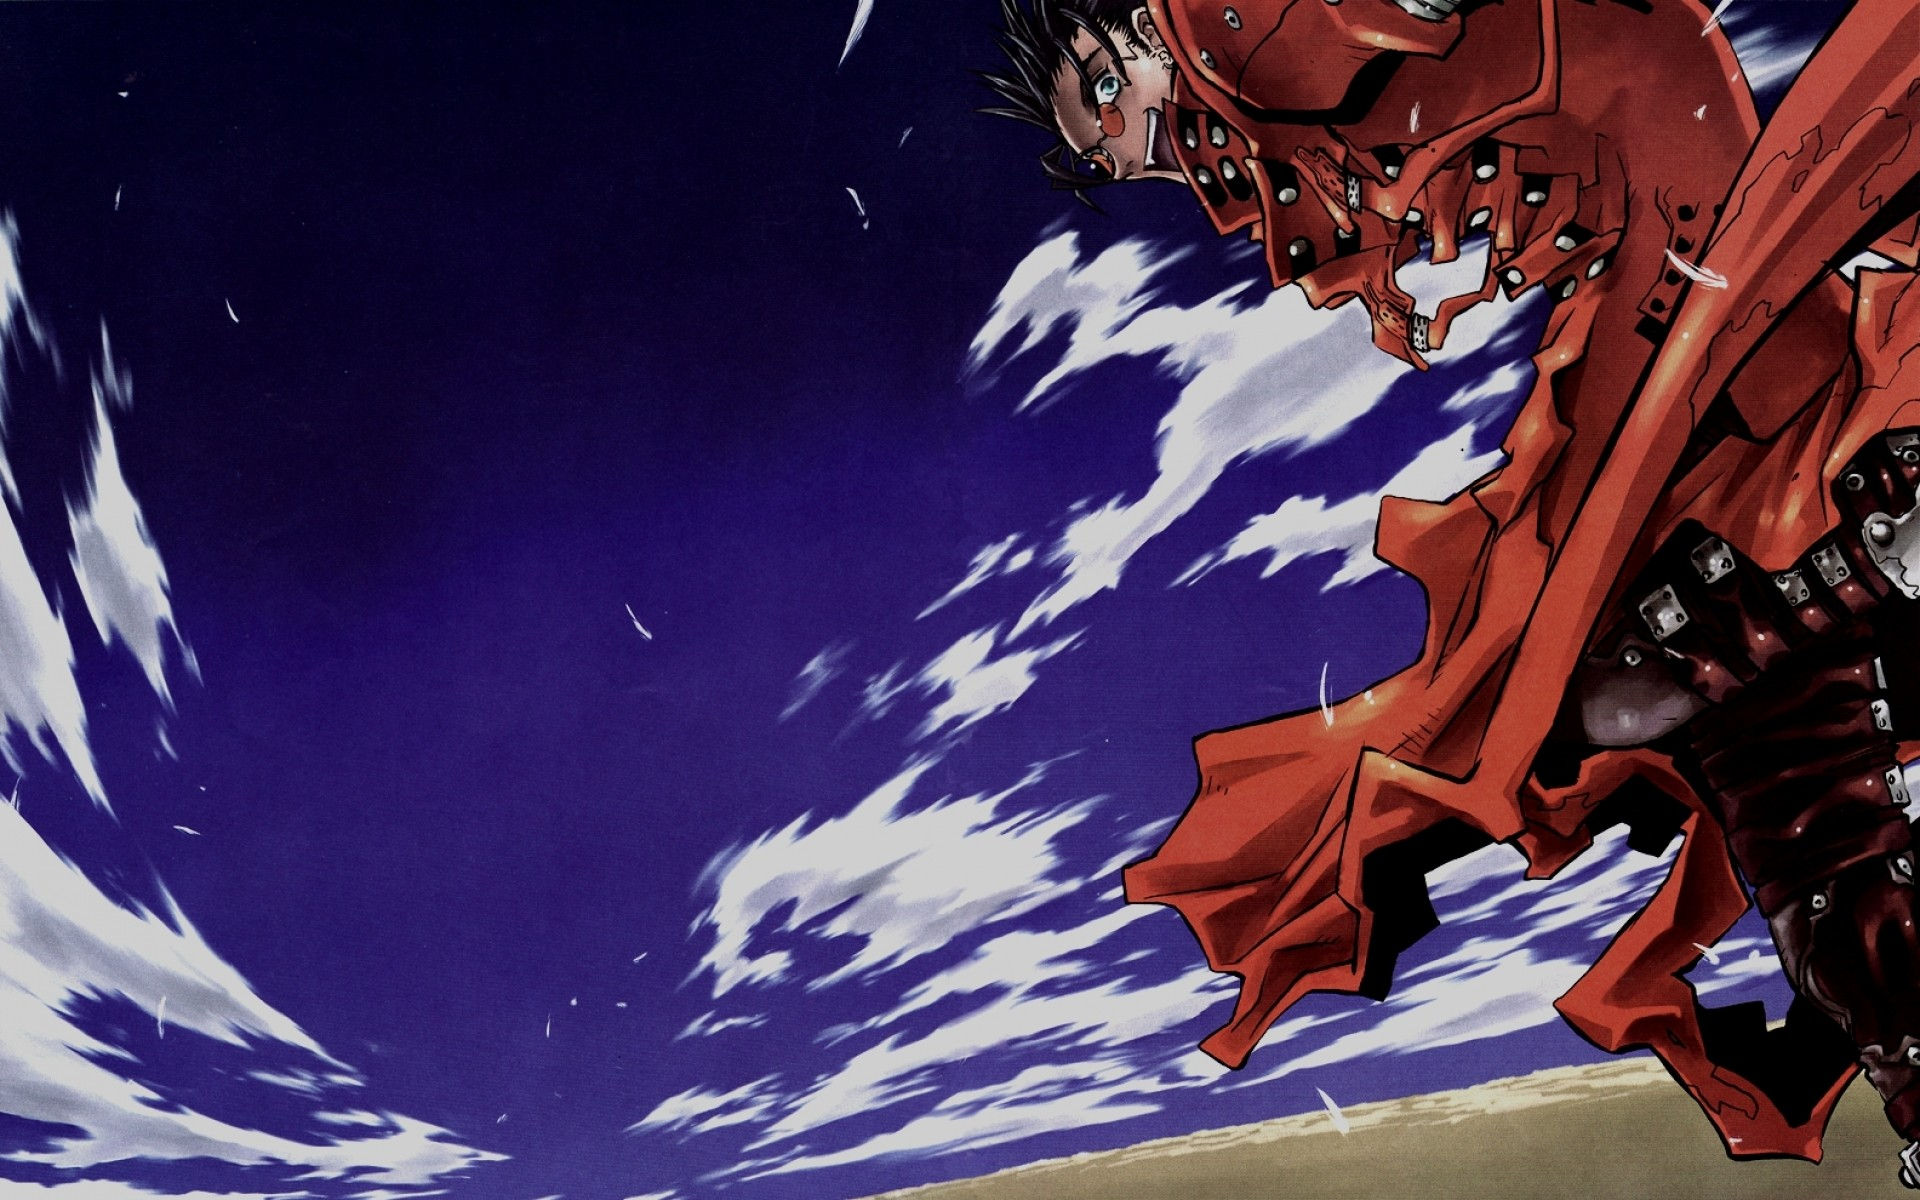 Vash The Stampede Wallpaper 42 Pictures Images, Photos, Reviews